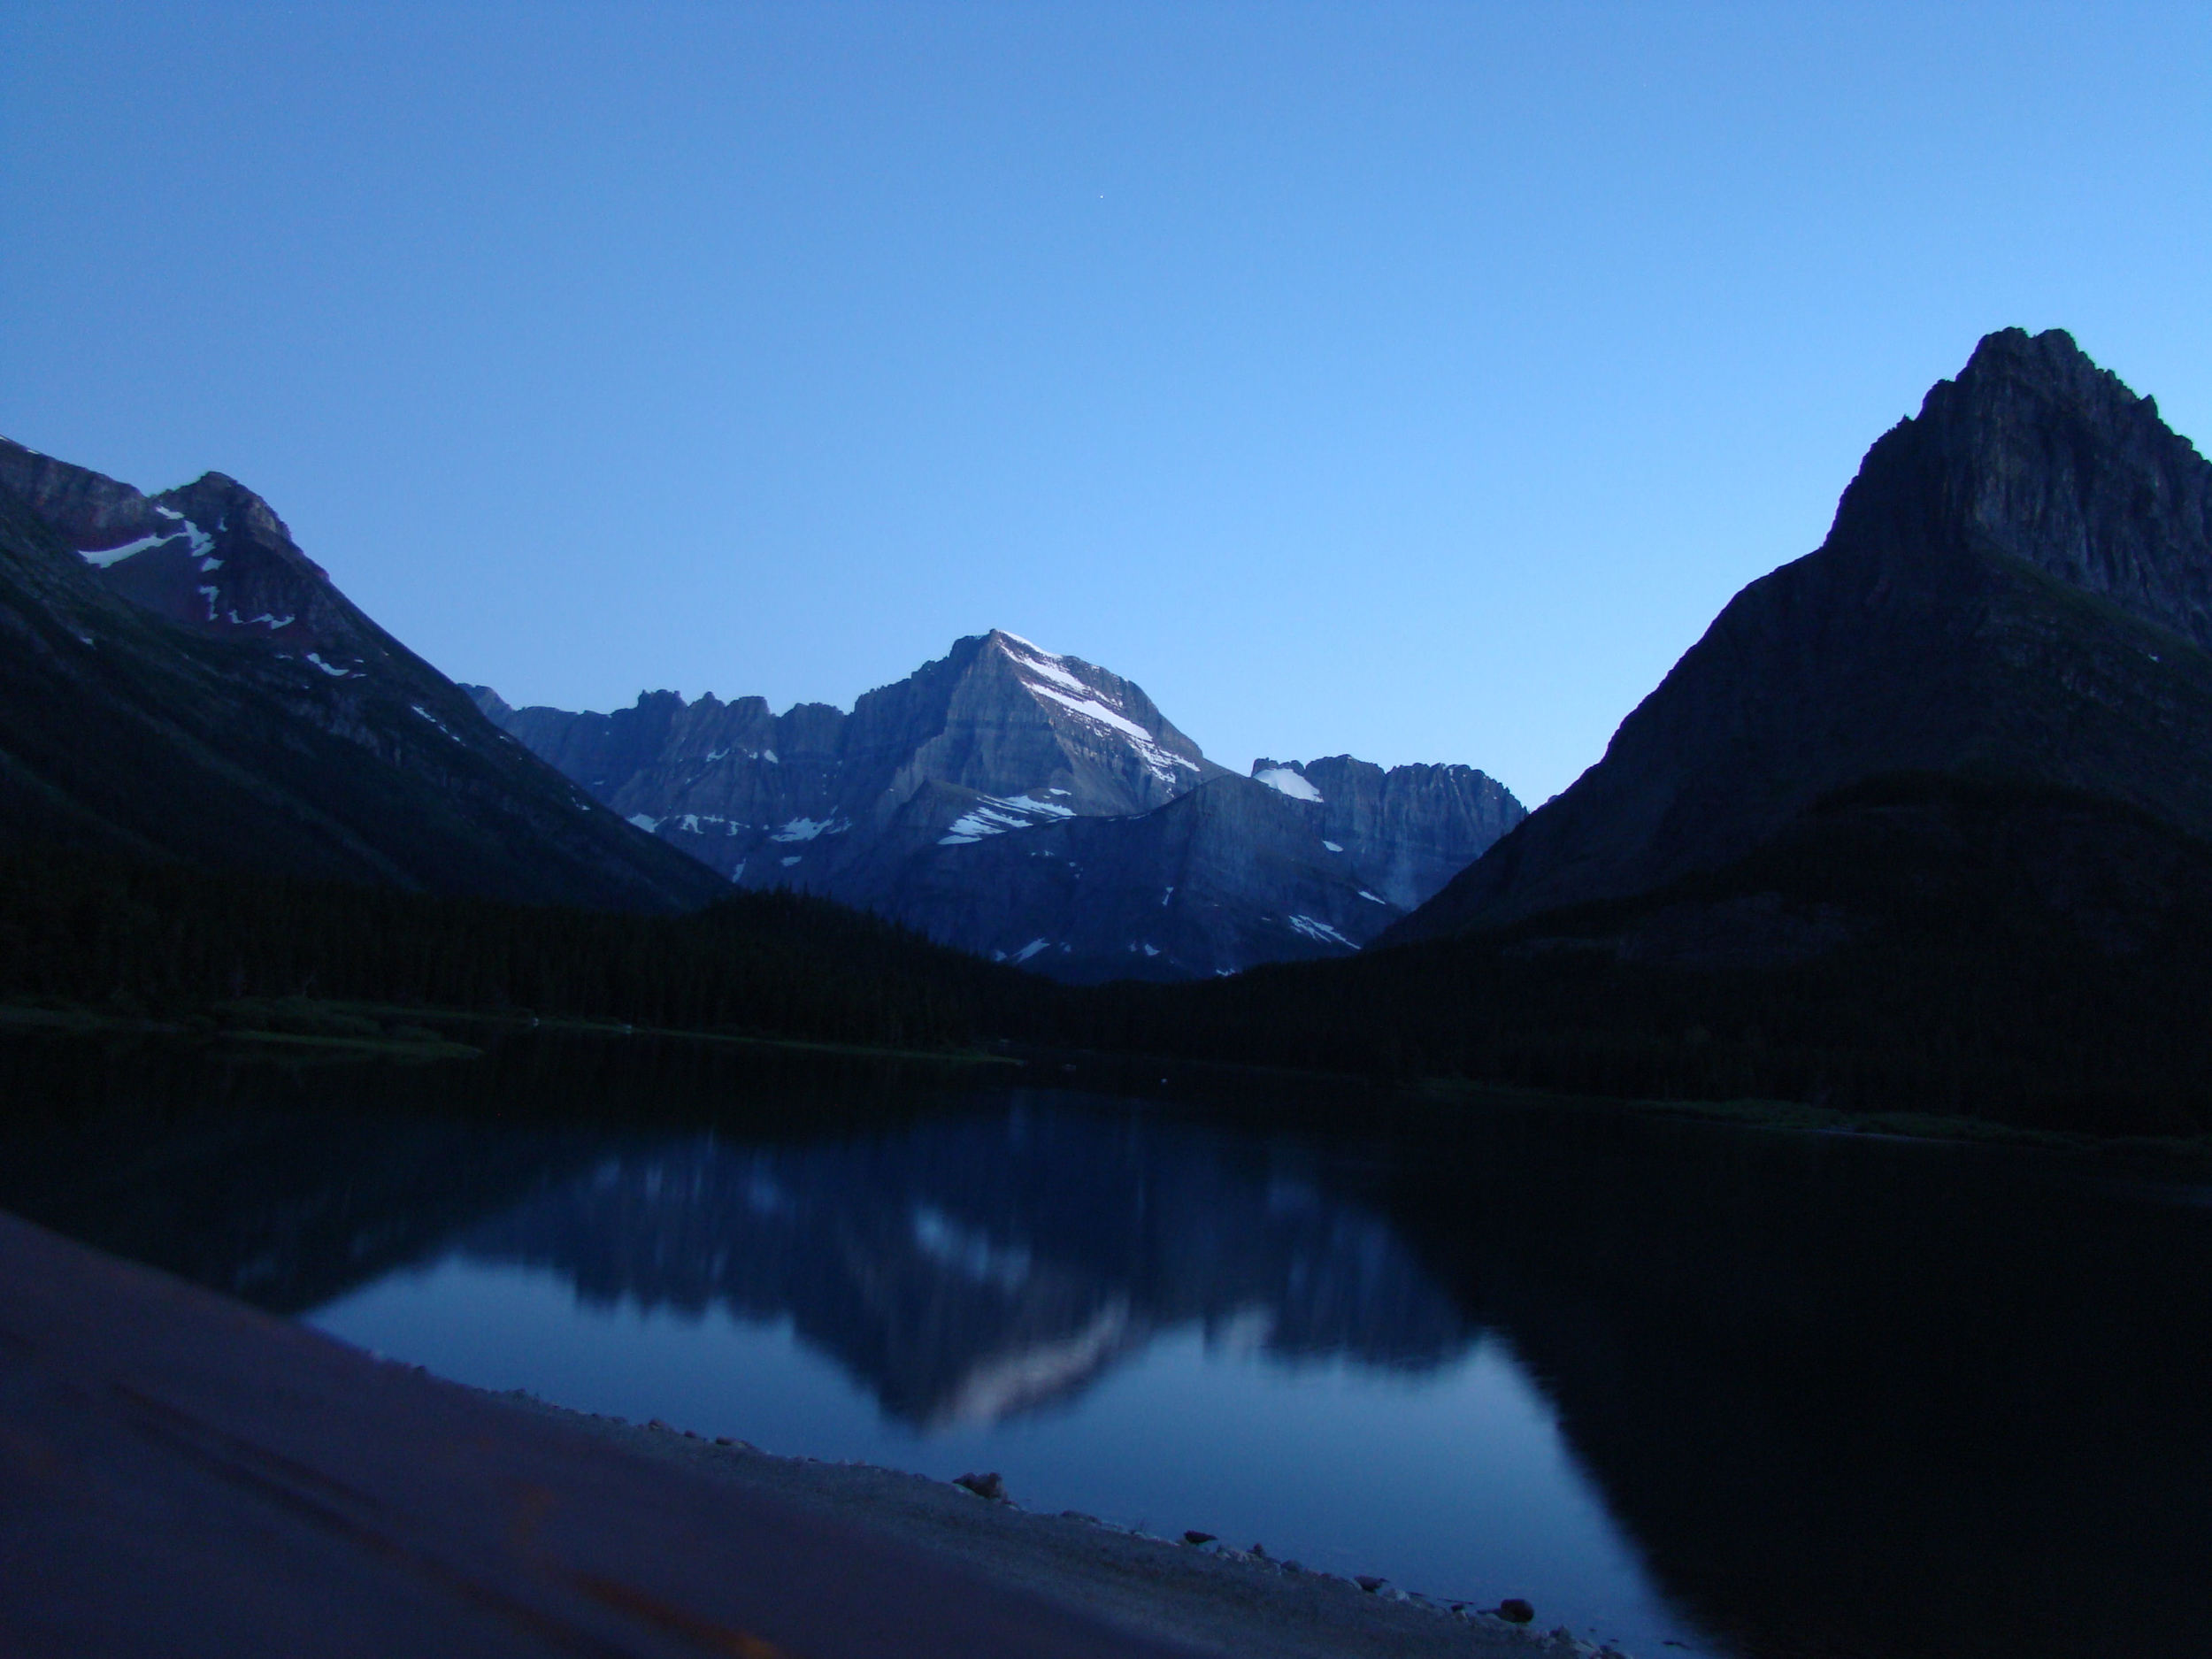 Night Falls, Many Glaciers, Glacier National Park, taken by P.E.